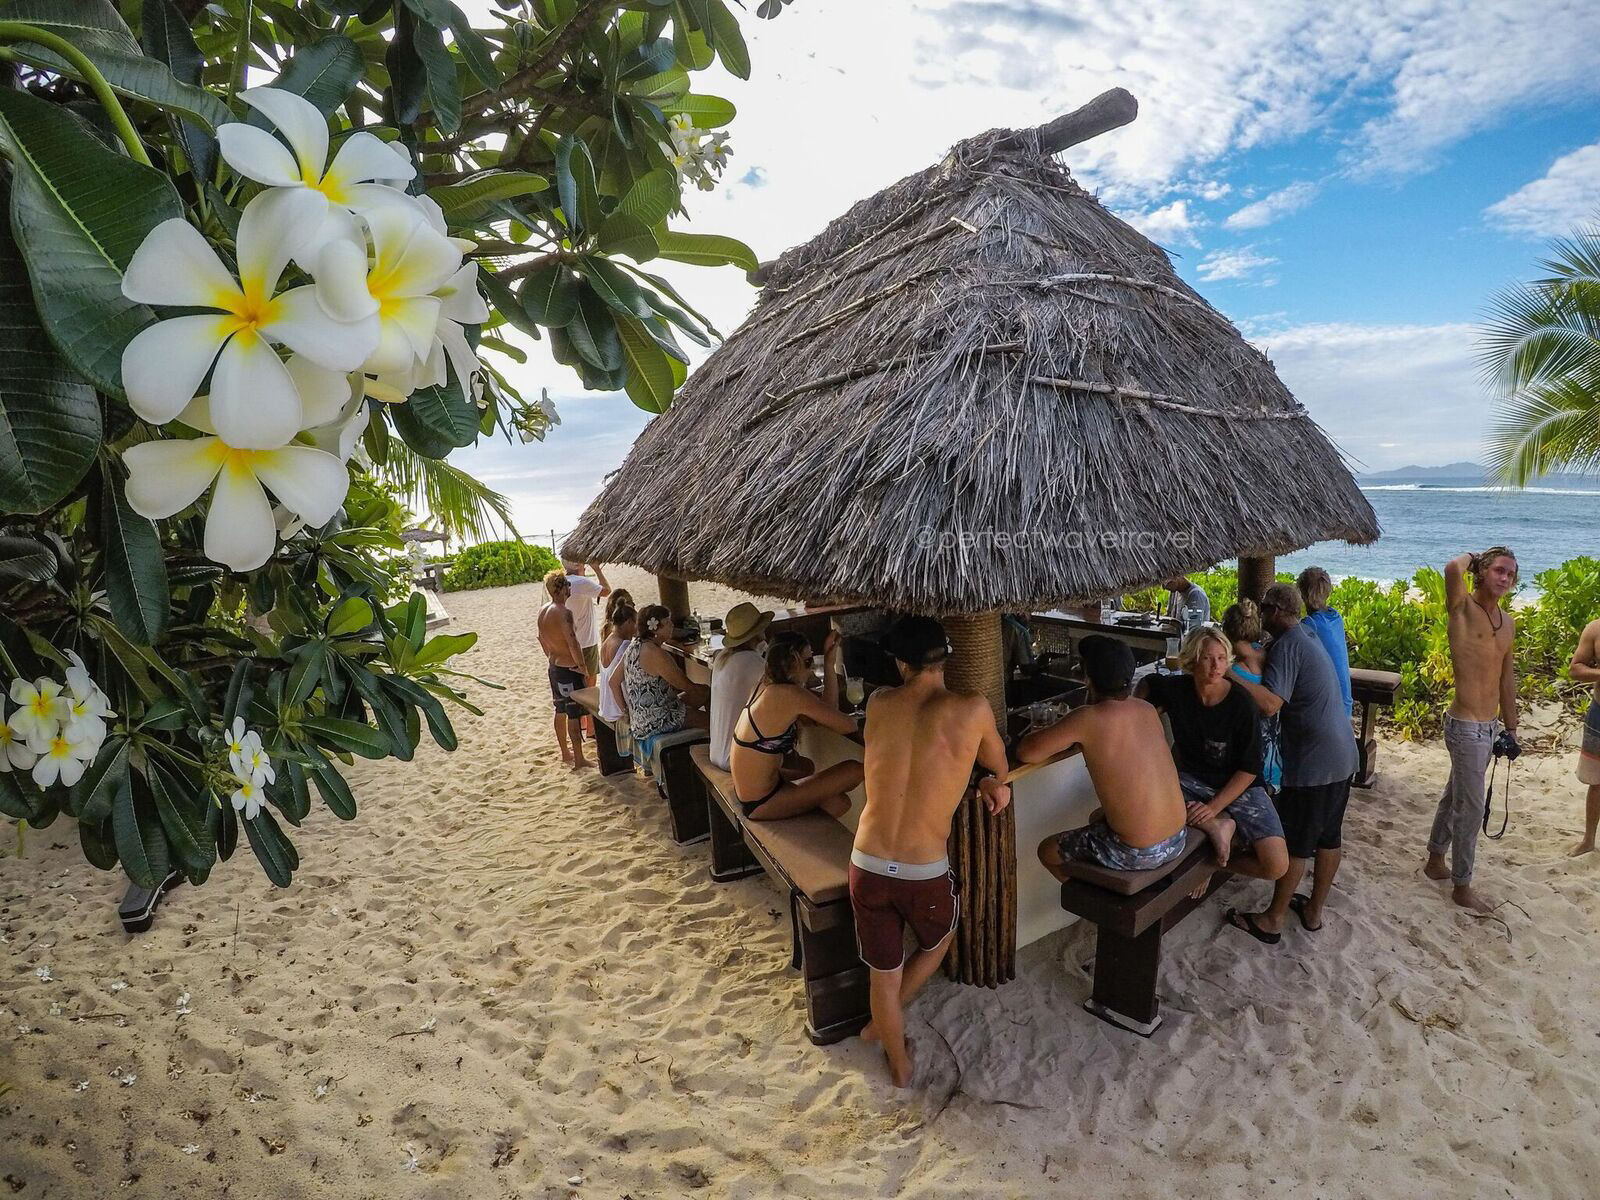 21-the-bula-bar-is-open-and-restaurants-is-firing-in-the-background_preview